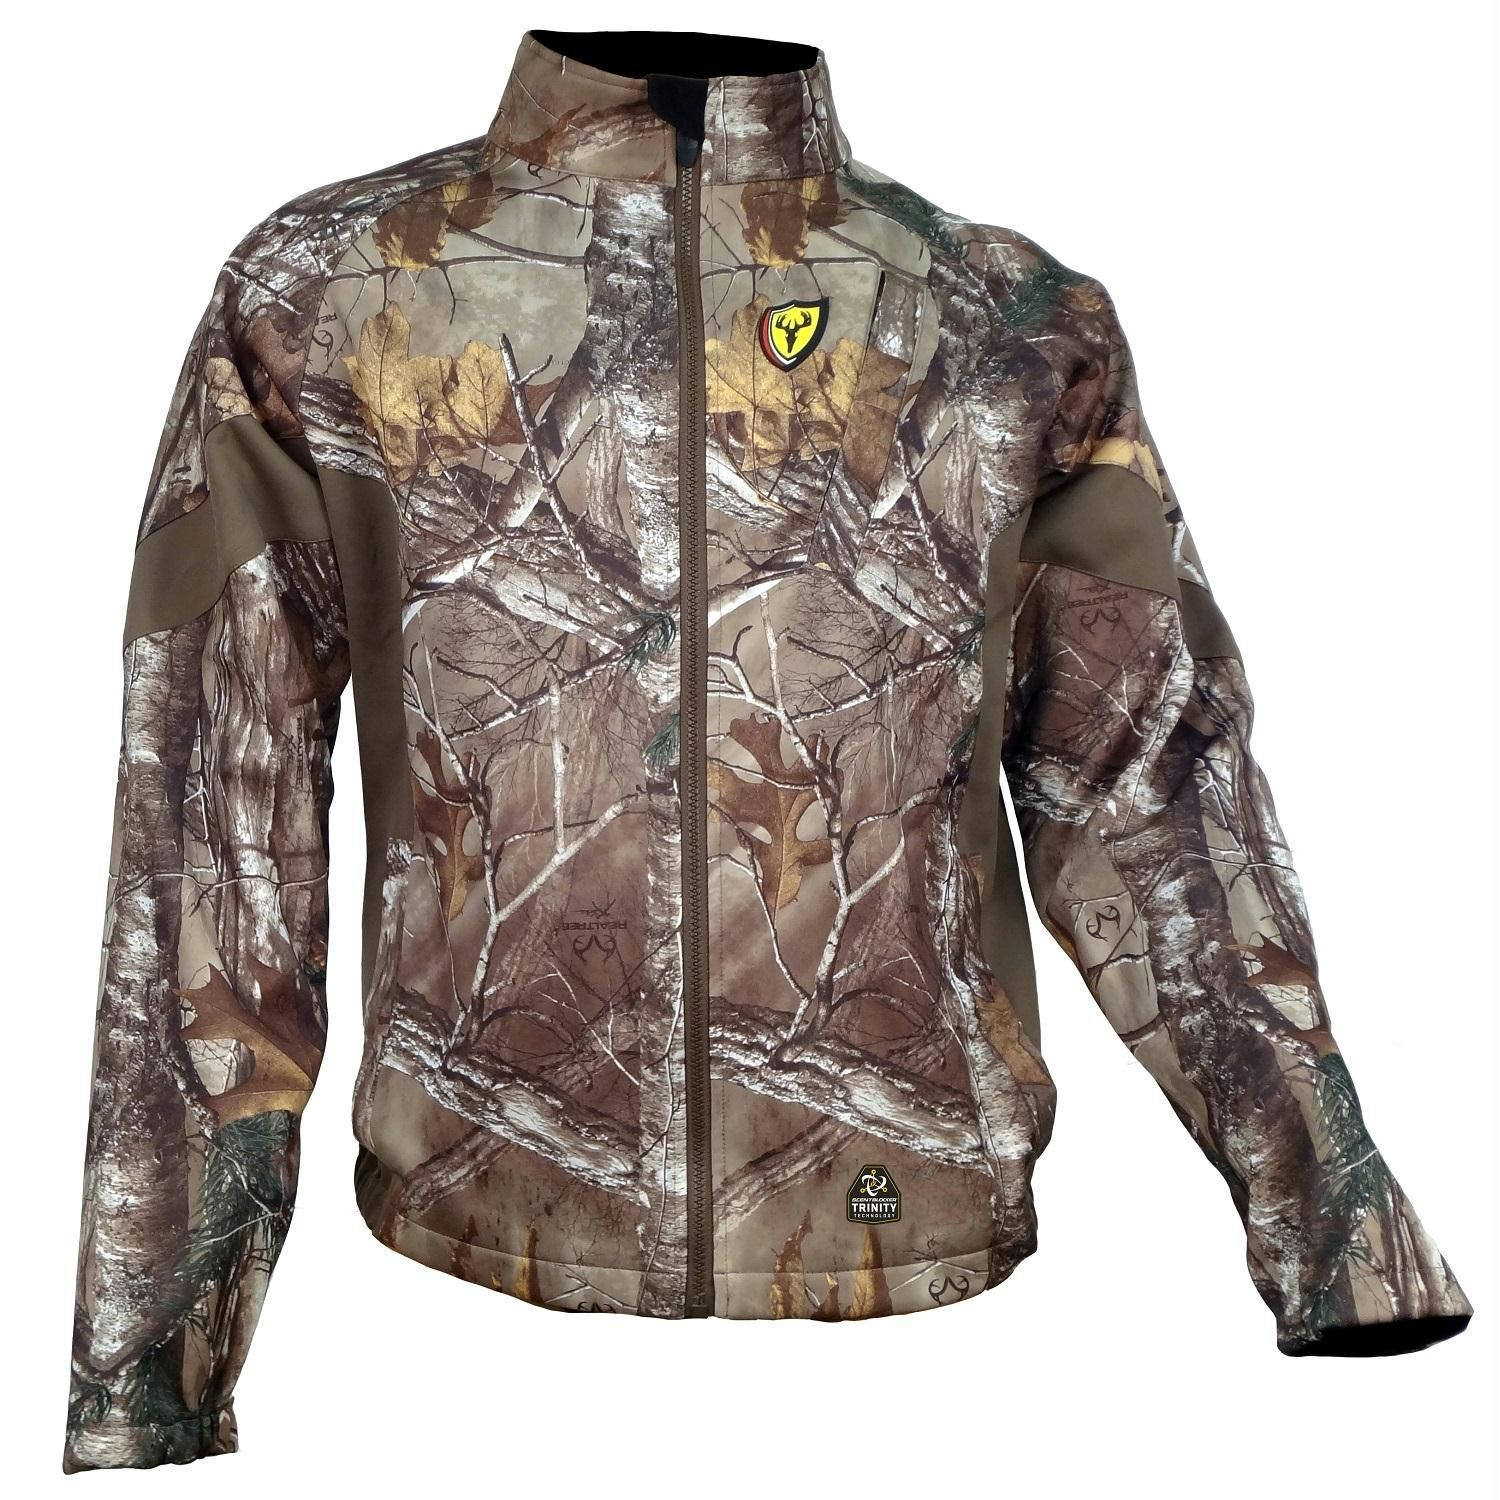 23d4e297d14ac Scent Blocker Sola Knock Out Jacket Realtree Xtra - S | Products ...